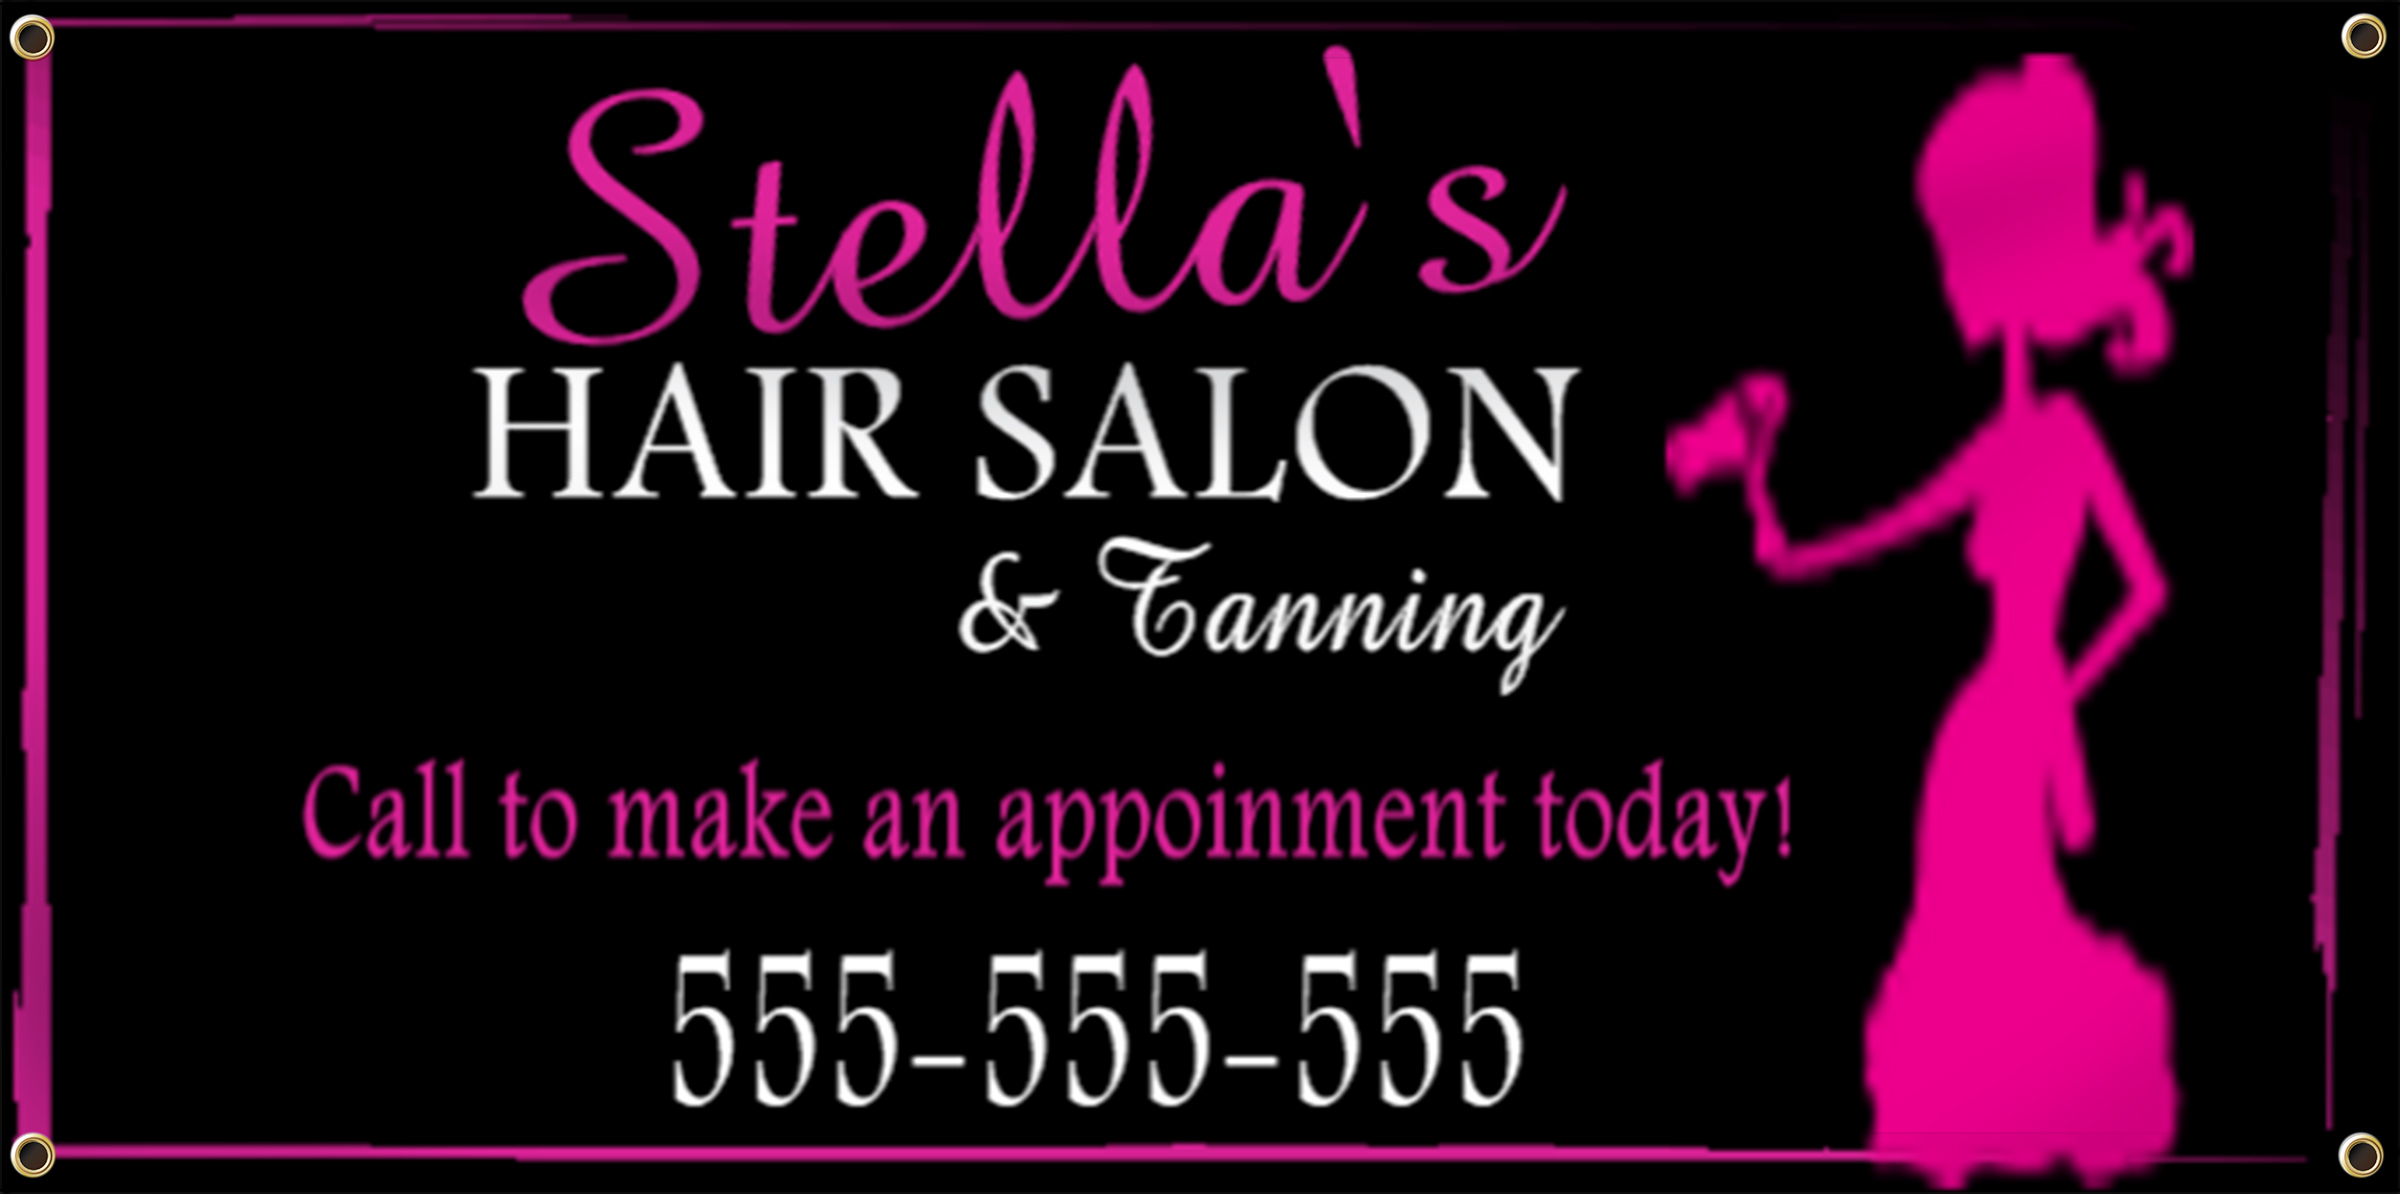 Hair Salon Banner Idea | LawnSigns.com